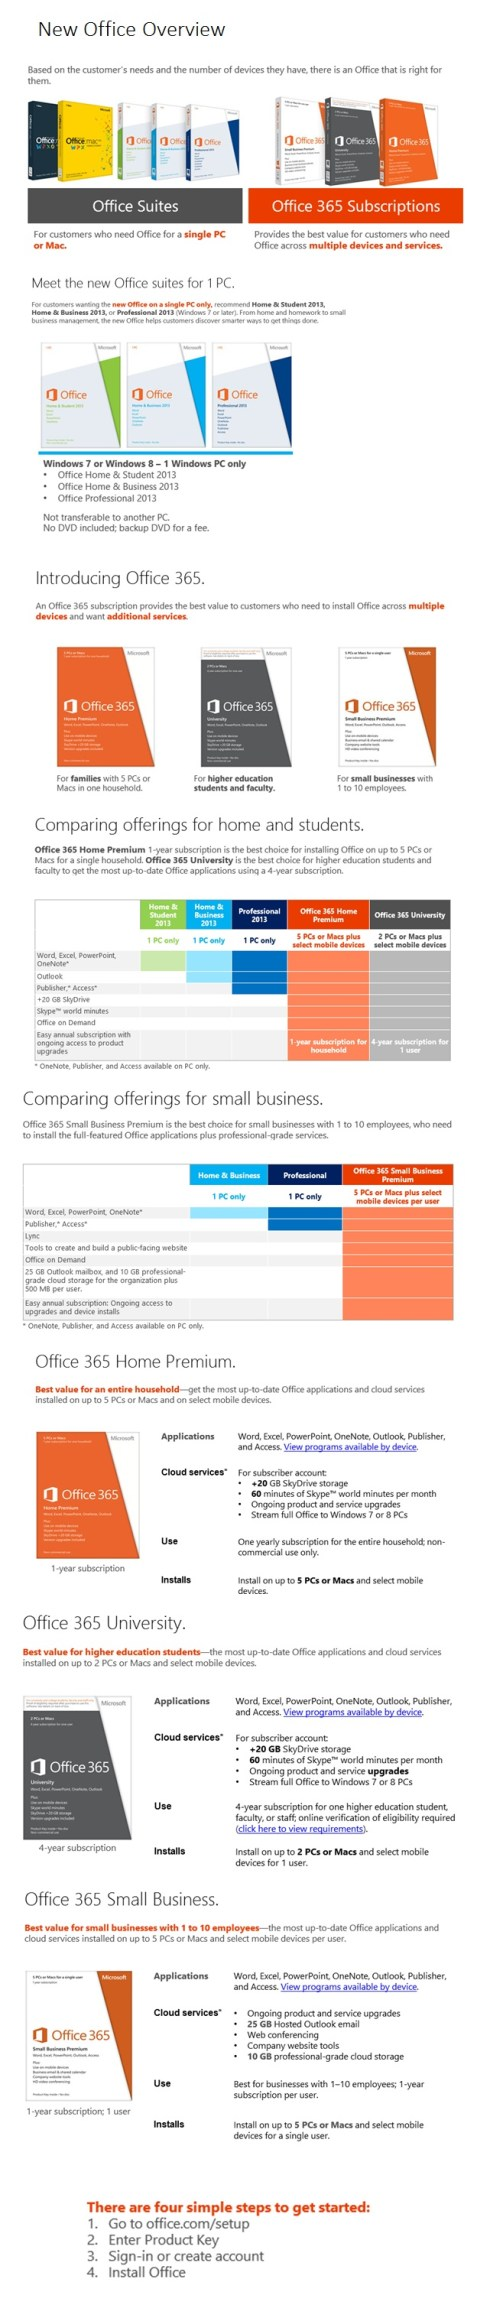 Microsoft Office 2013 and 365